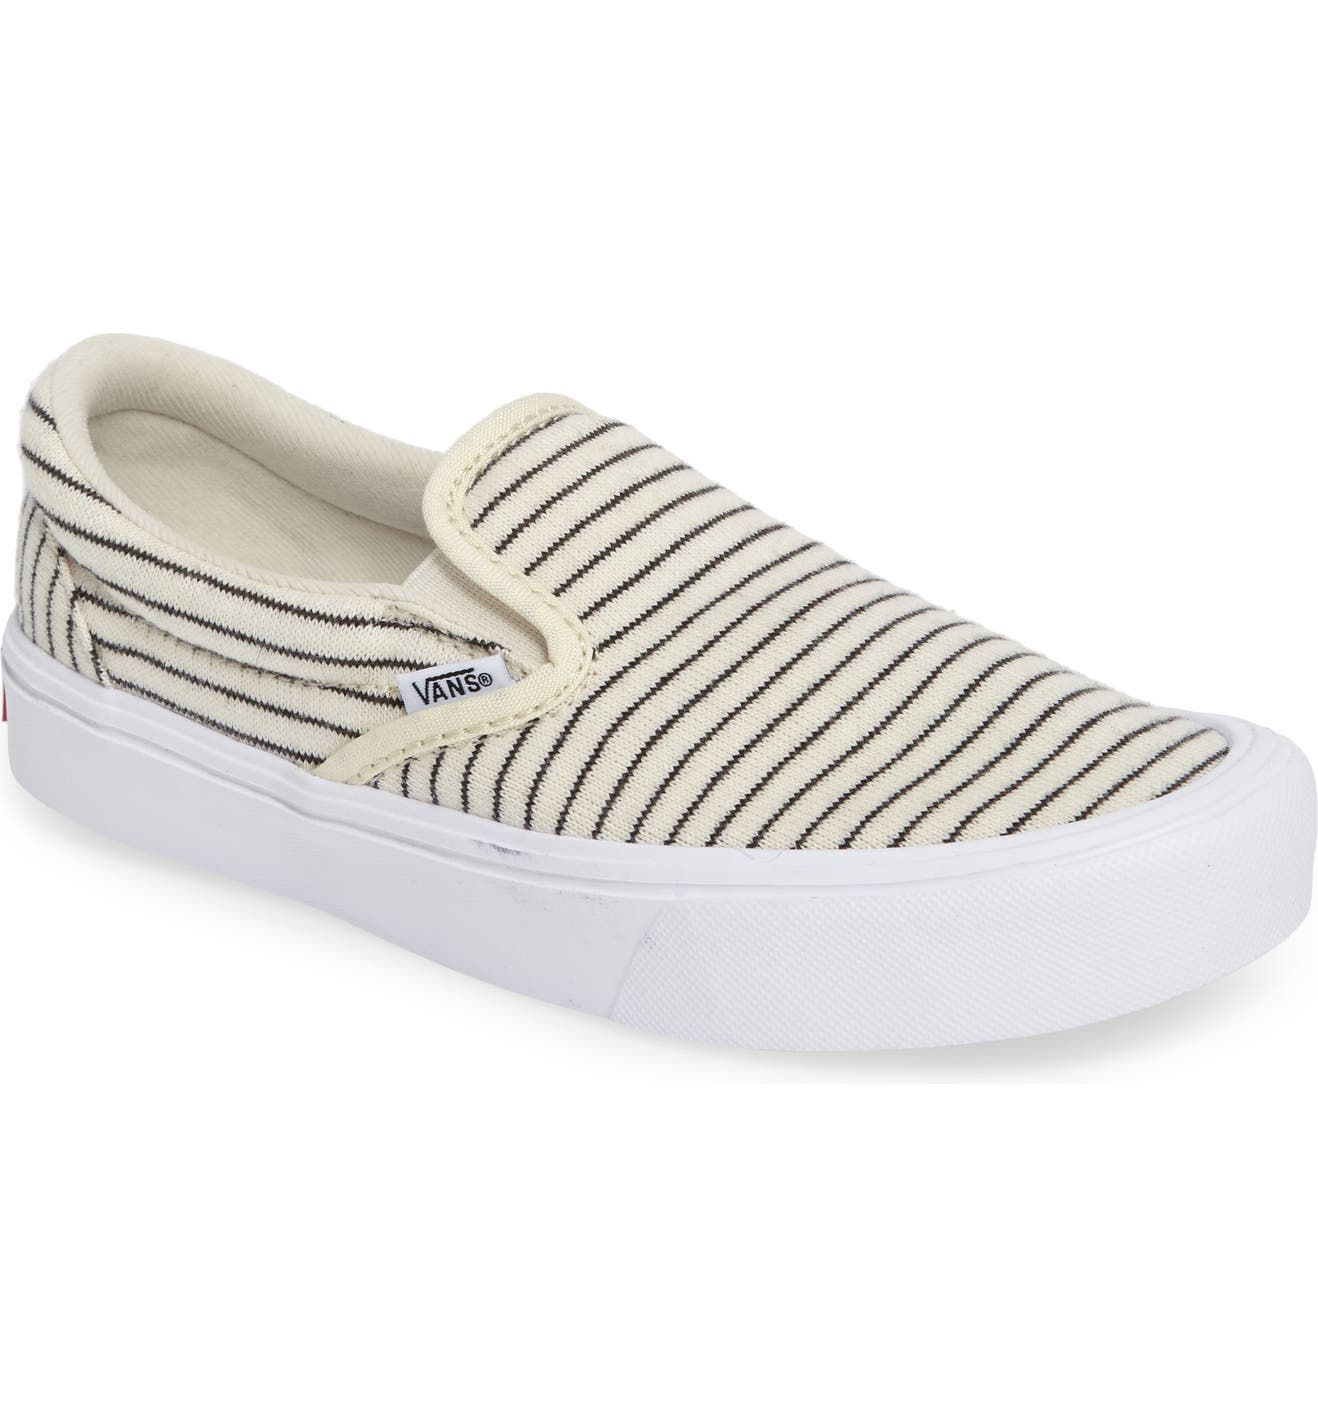 ddb8aa4dad Vans Authentic Lite Stripe Slip-On Sneaker (Women)